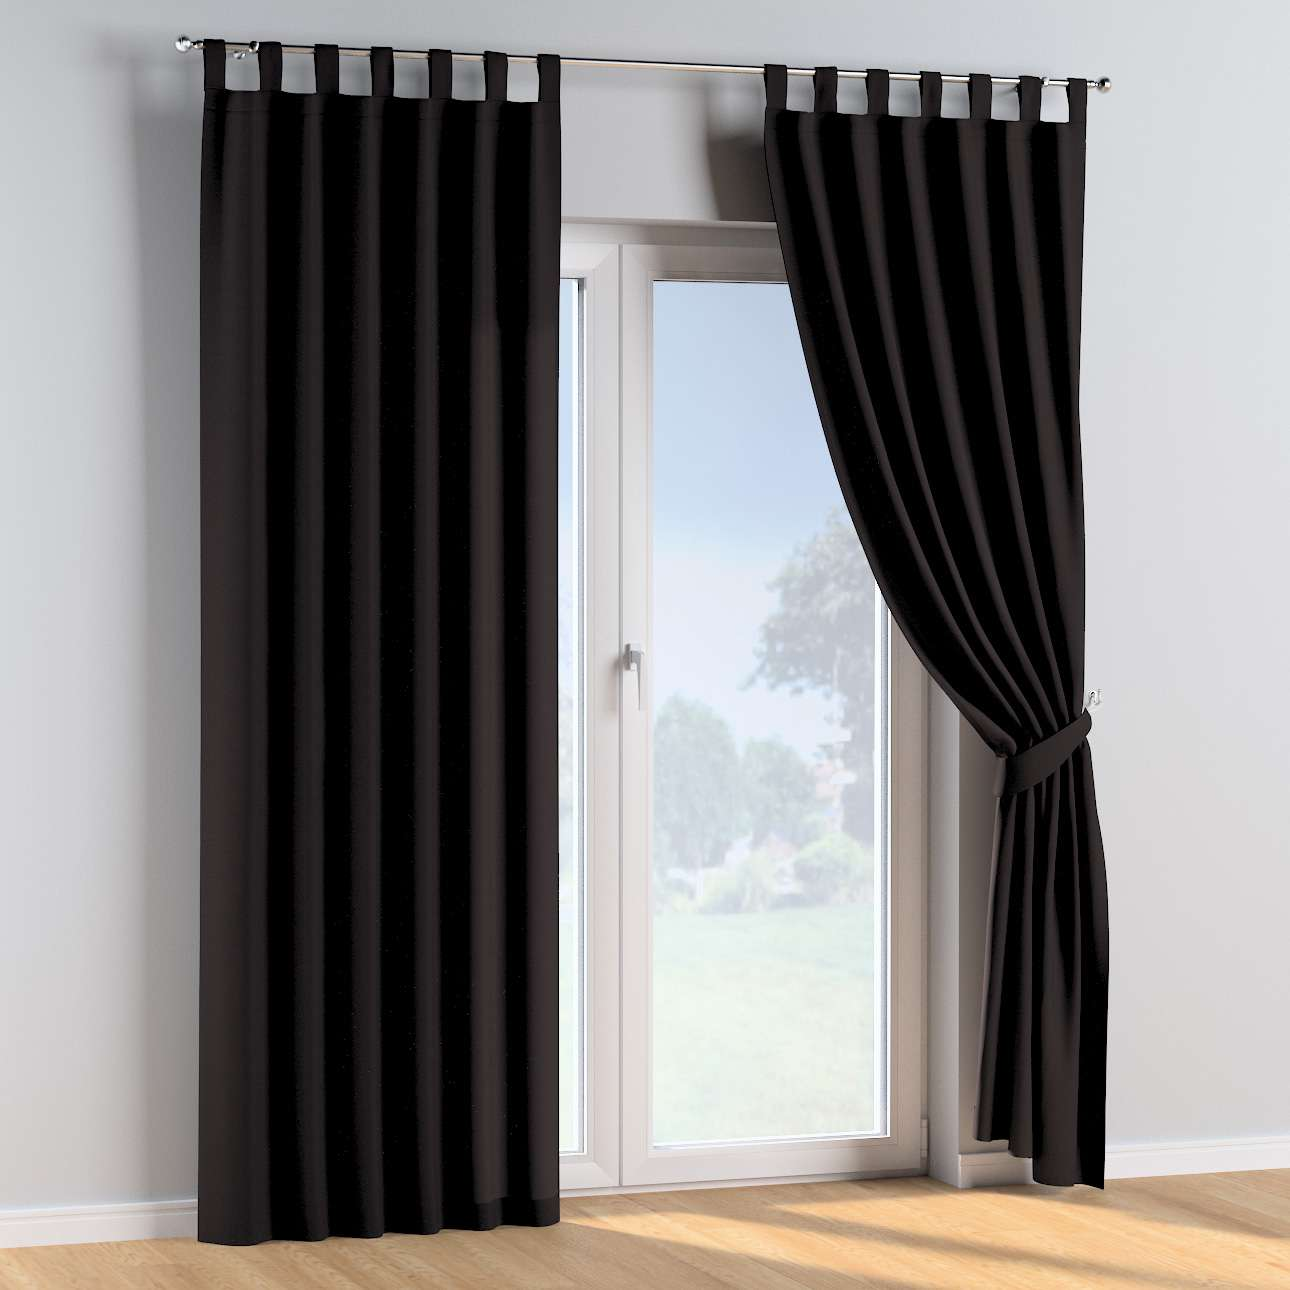 Tab top curtains in collection Cotton Story, fabric: 702-09